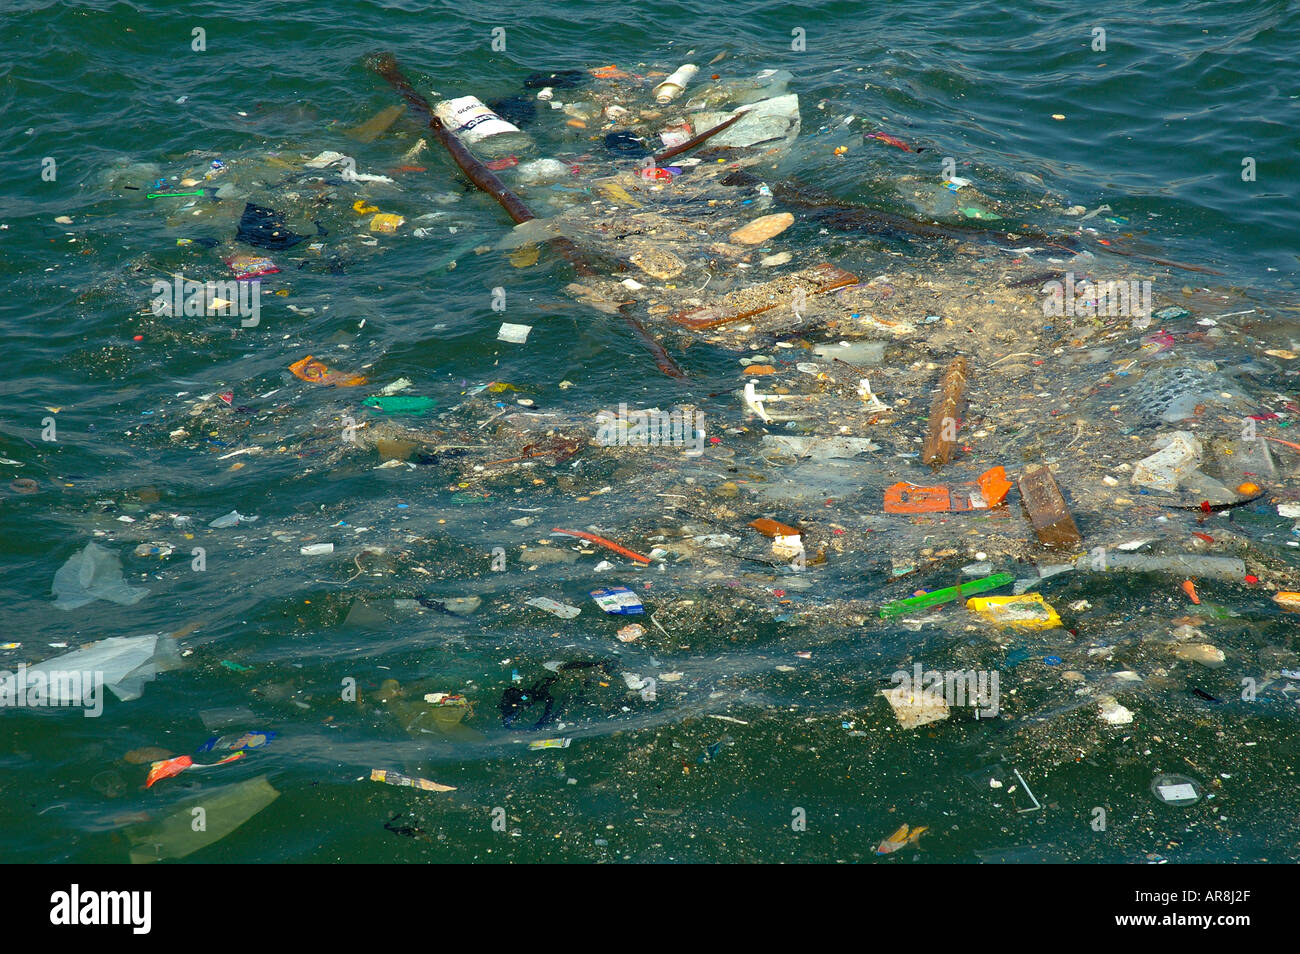 sea pollution and the great pacific A widely circulated photograph does not show a great pacific garbage patch  that covers over 8% of the pacific ocean.